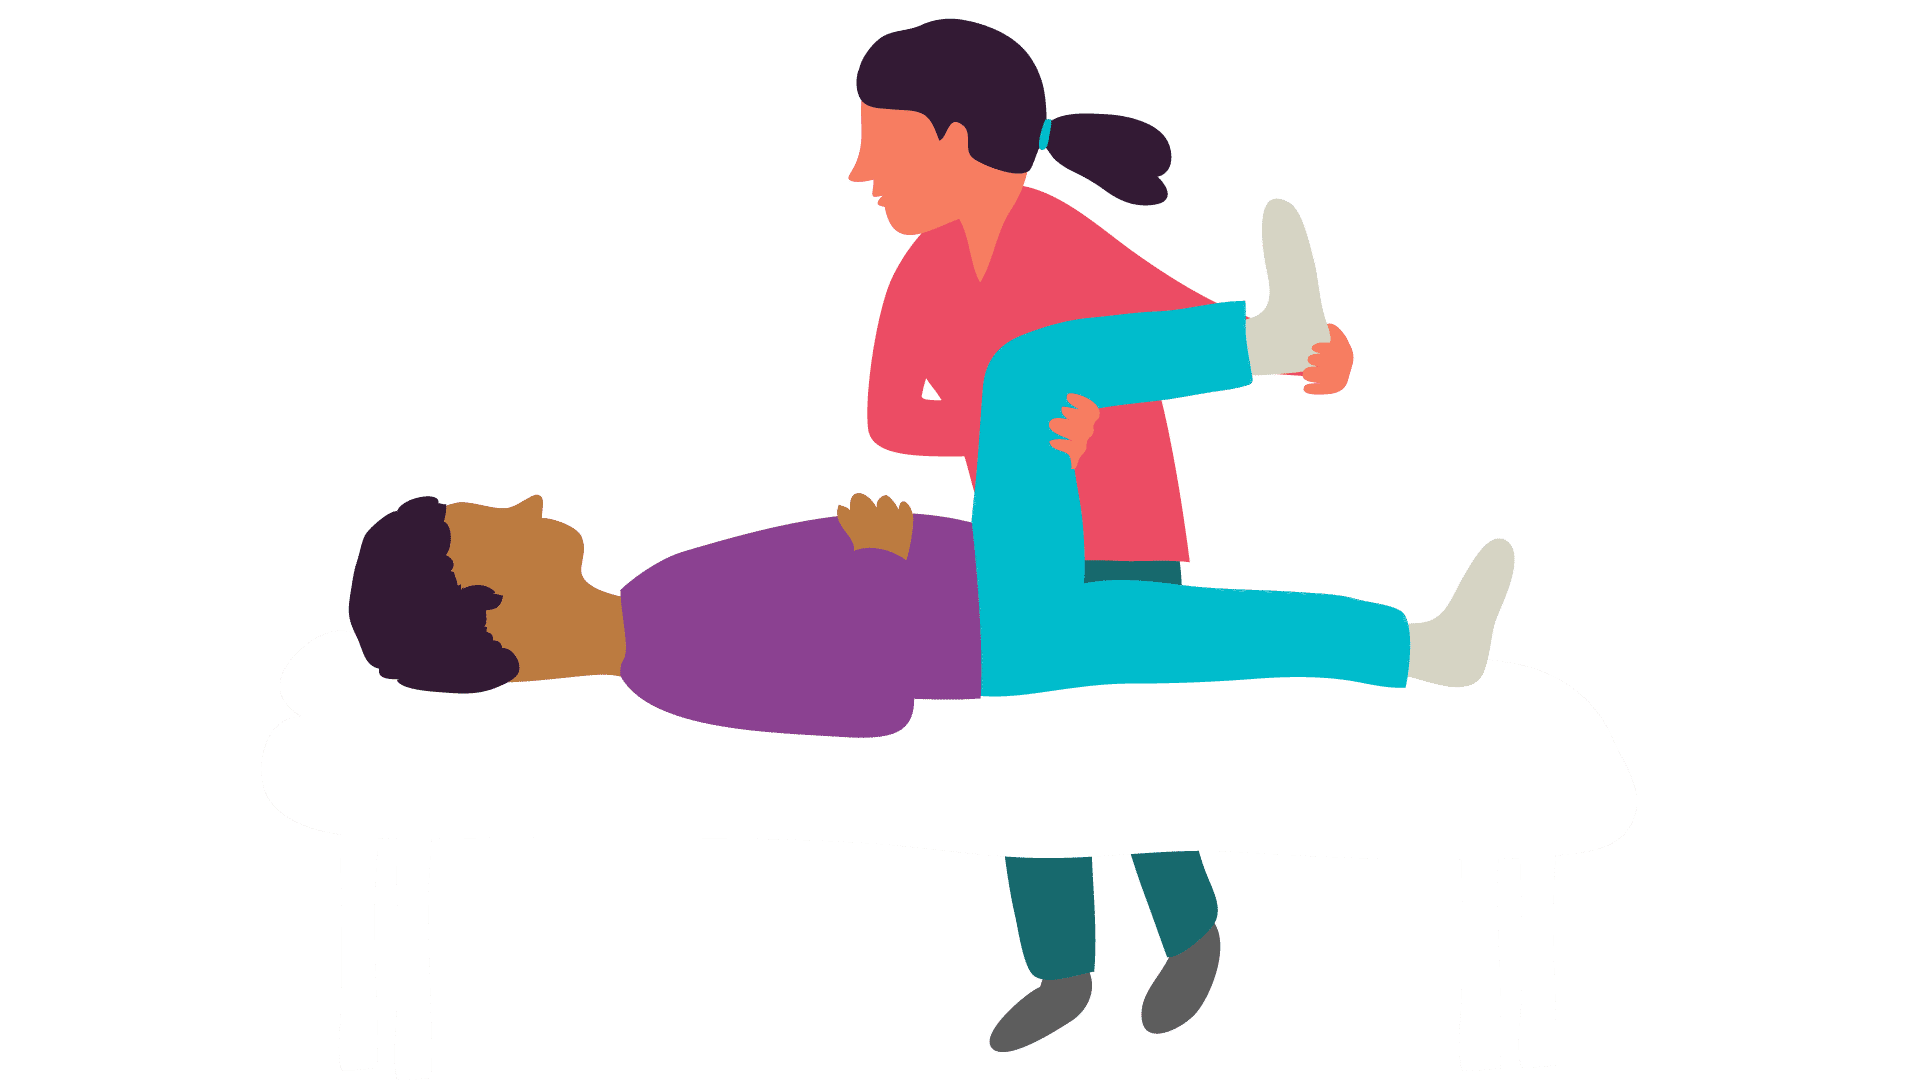 Workout clipart physical therapy. Exercise for back and